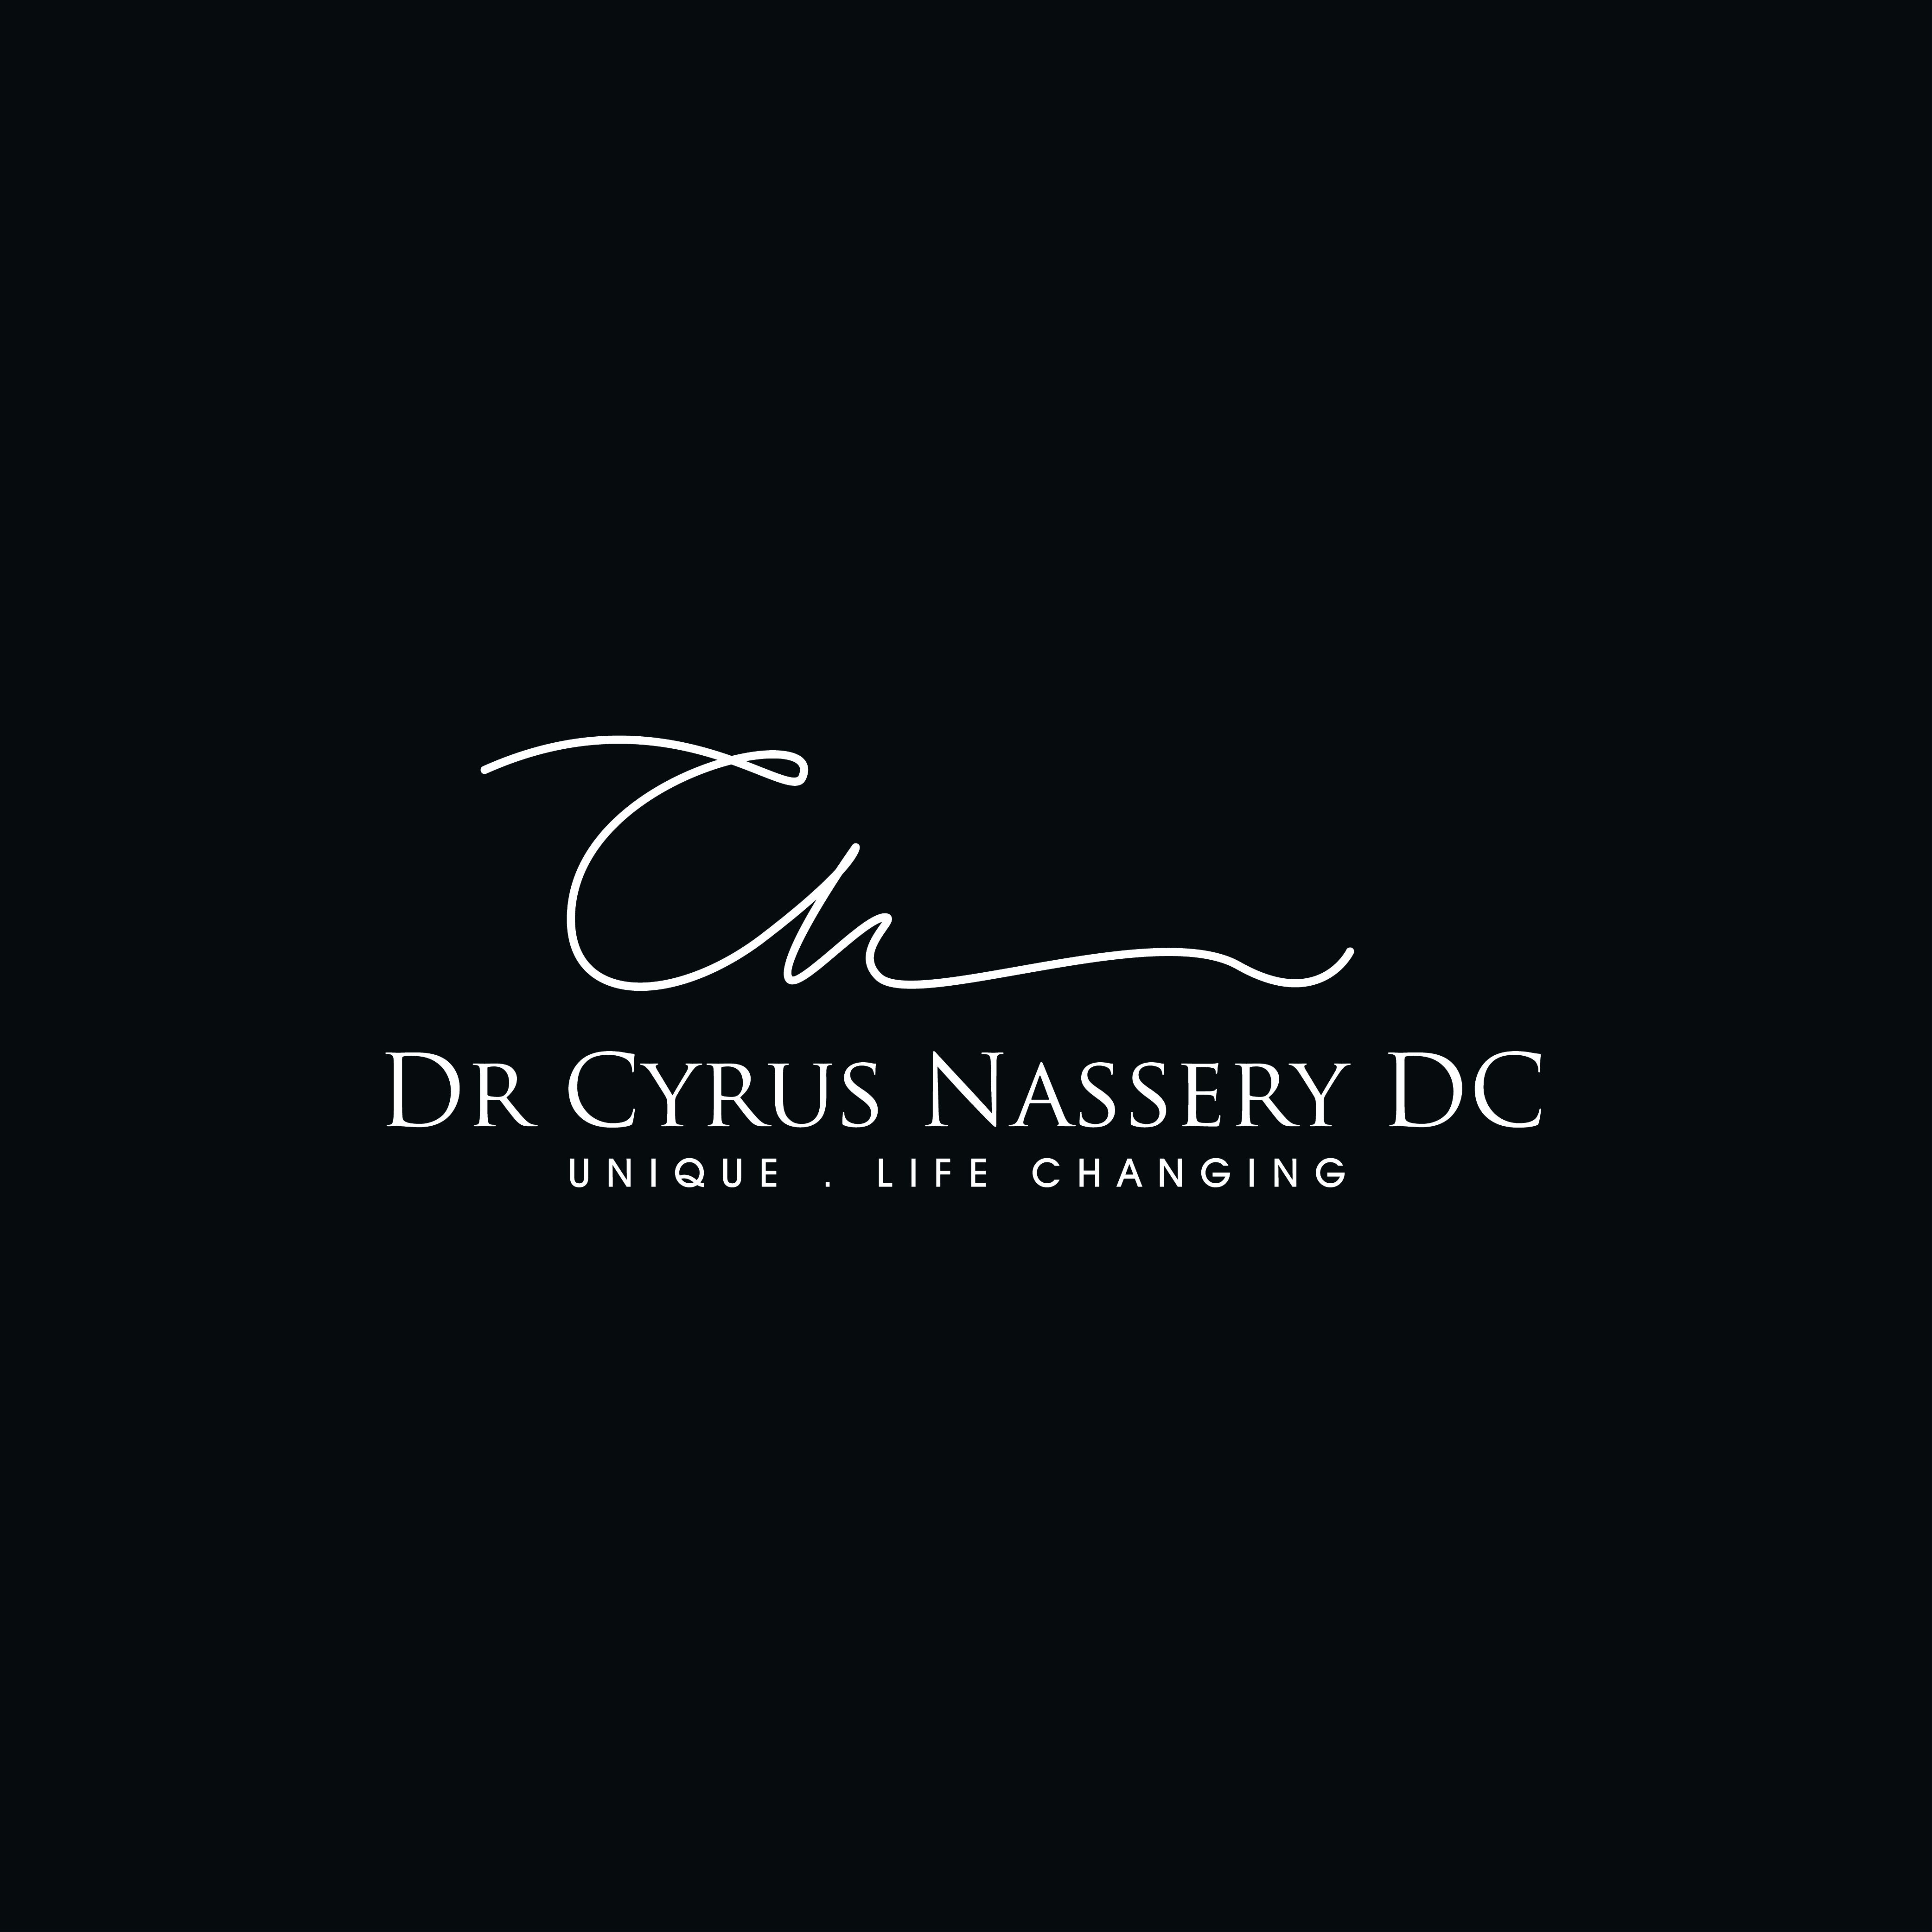 Dr Cyrus Nassery DC